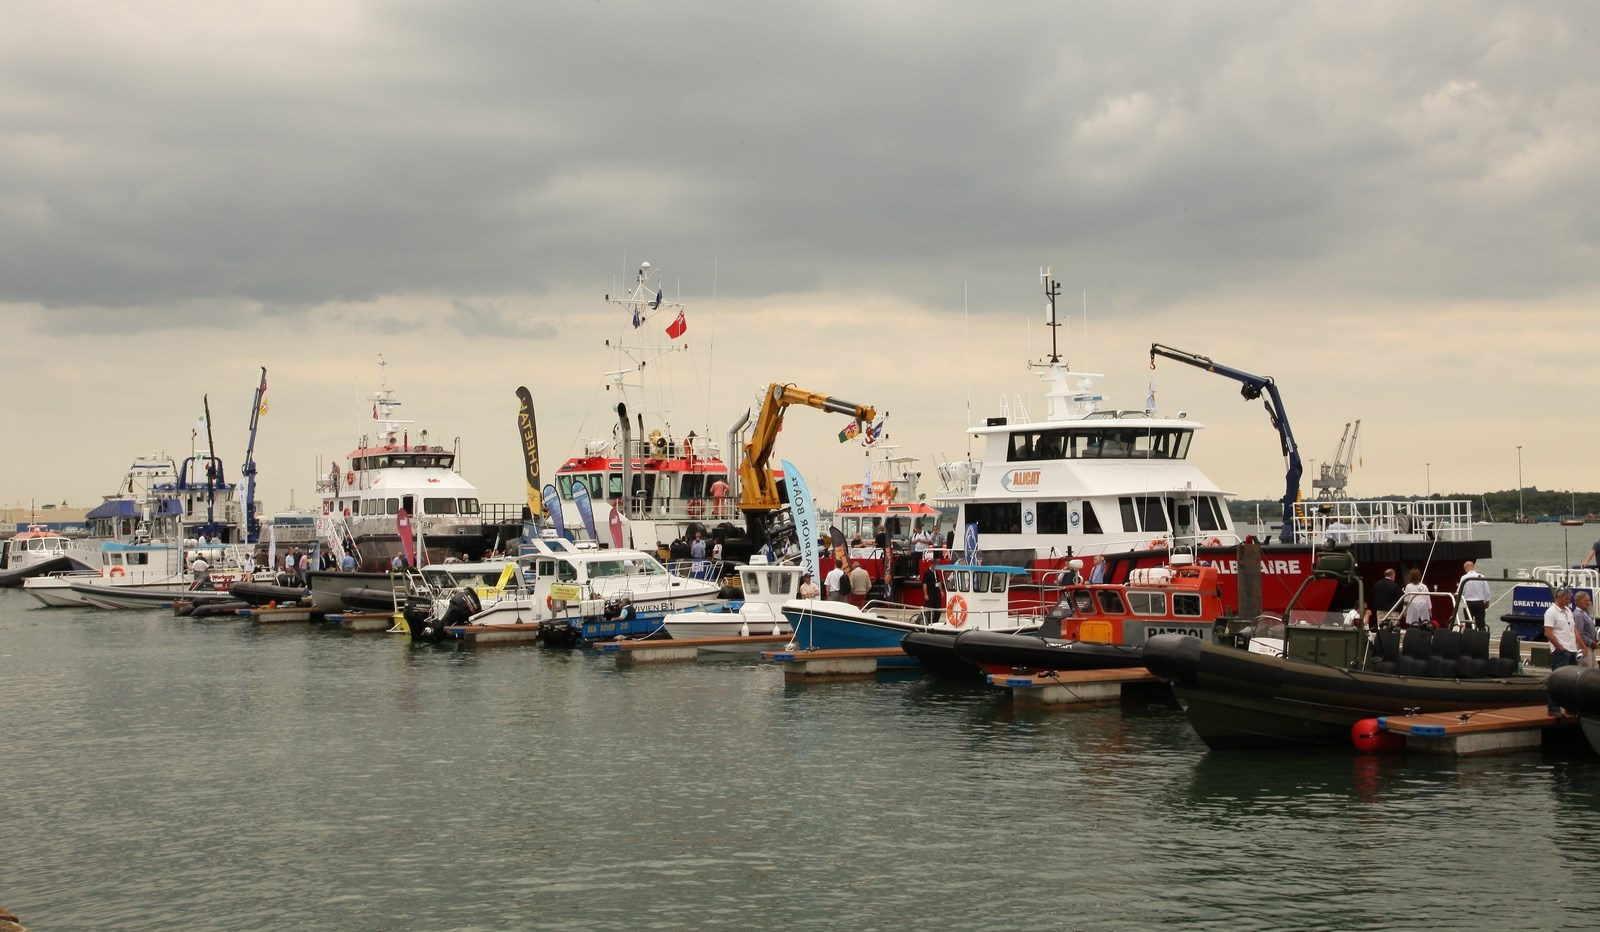 The exhibition was well visited and there were a lot of visitors interested in the vessels outside on the quay.